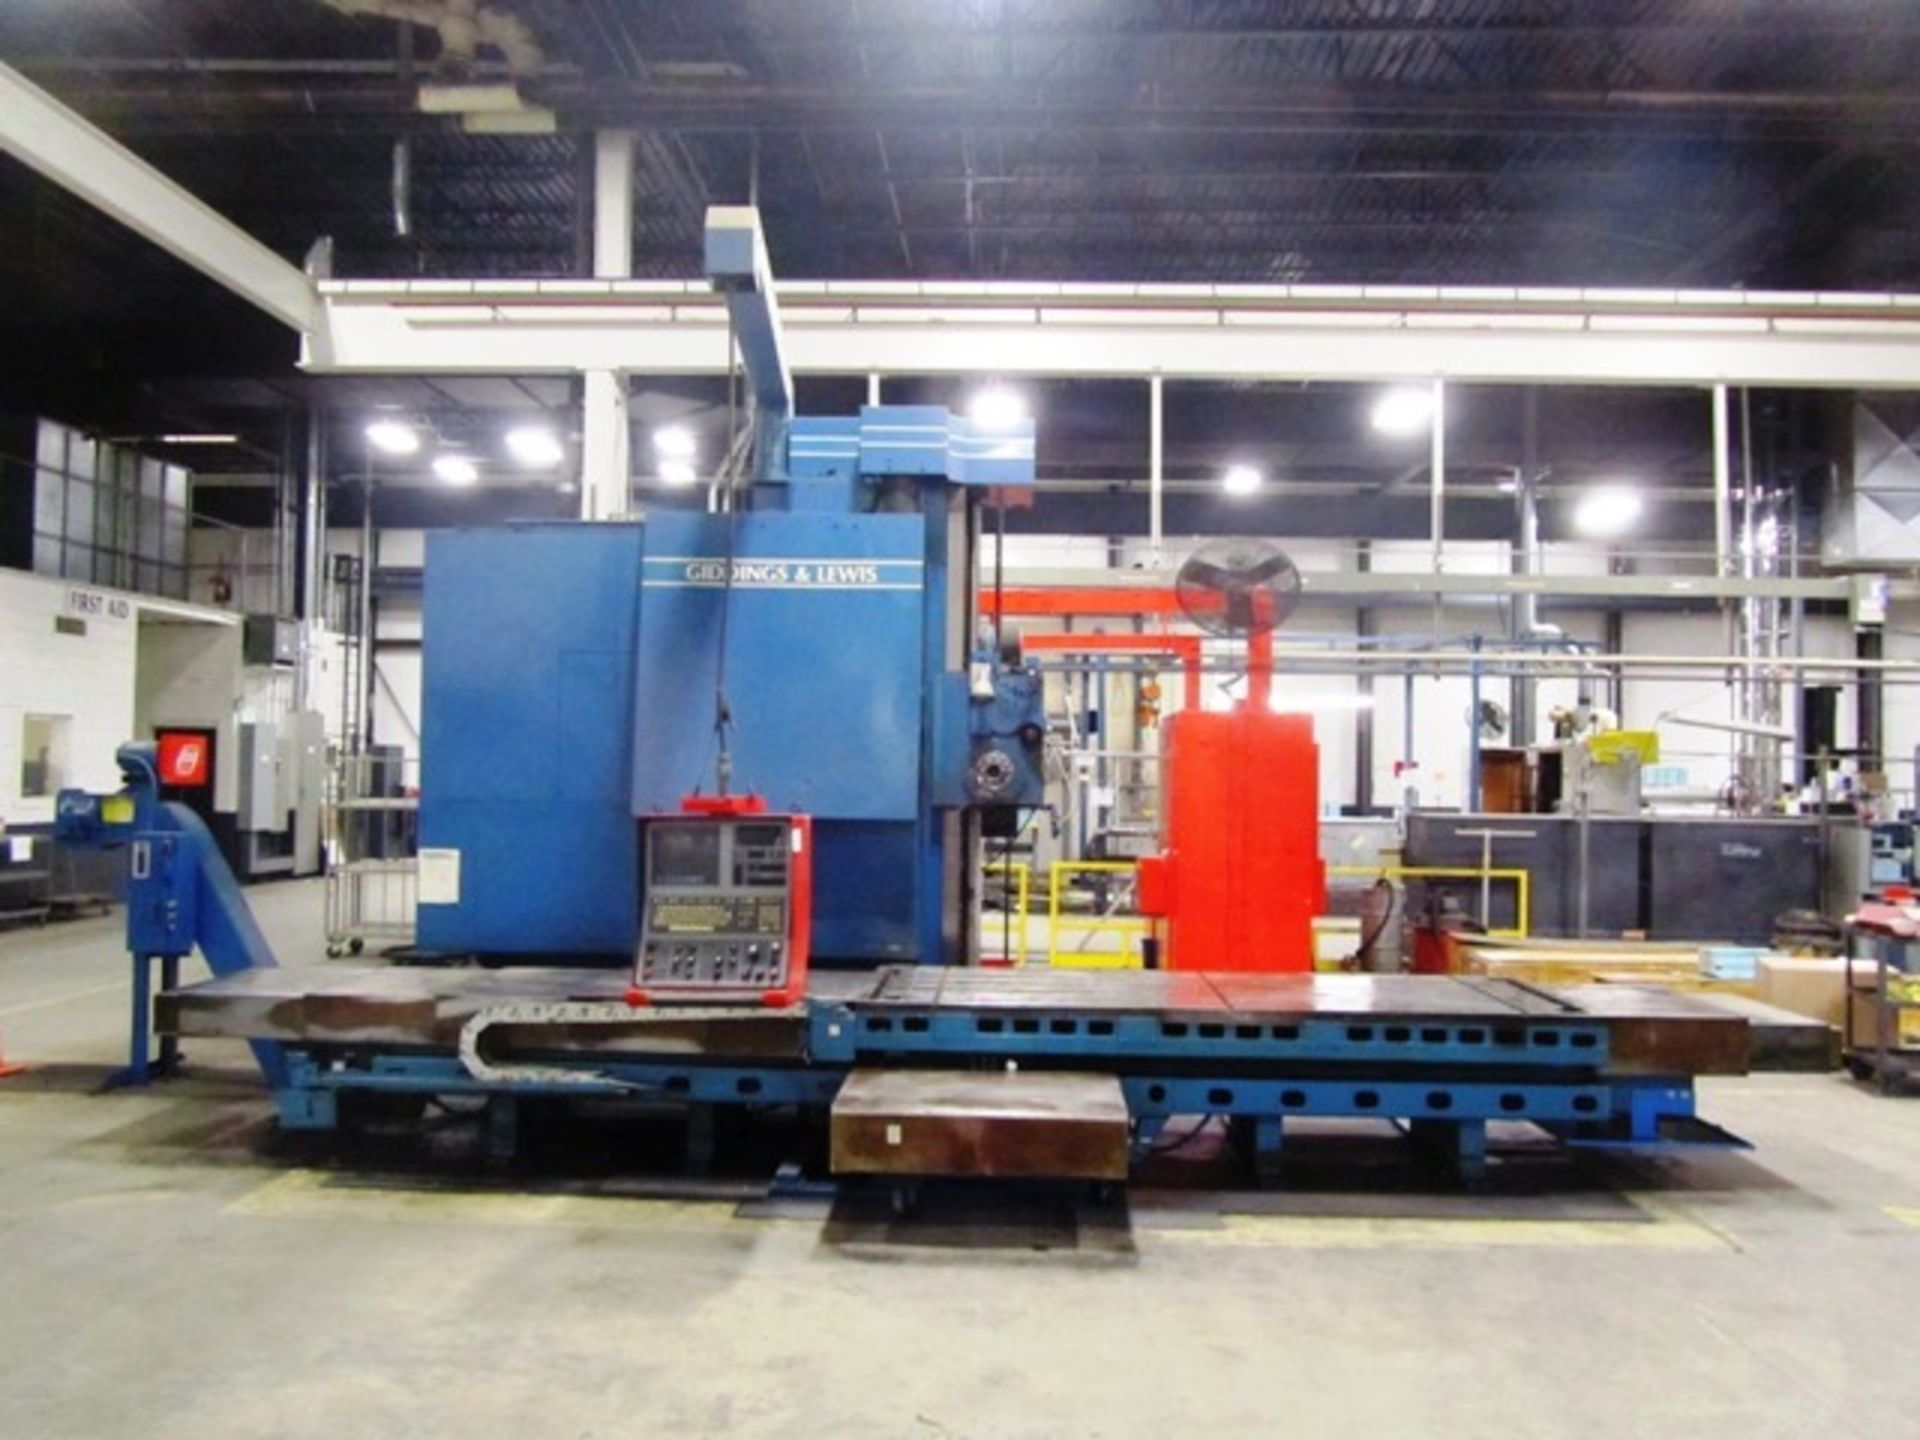 Giddings & Lewis Model 70-G5-T 5'' CNC Table Type Horizontal Boring Mill